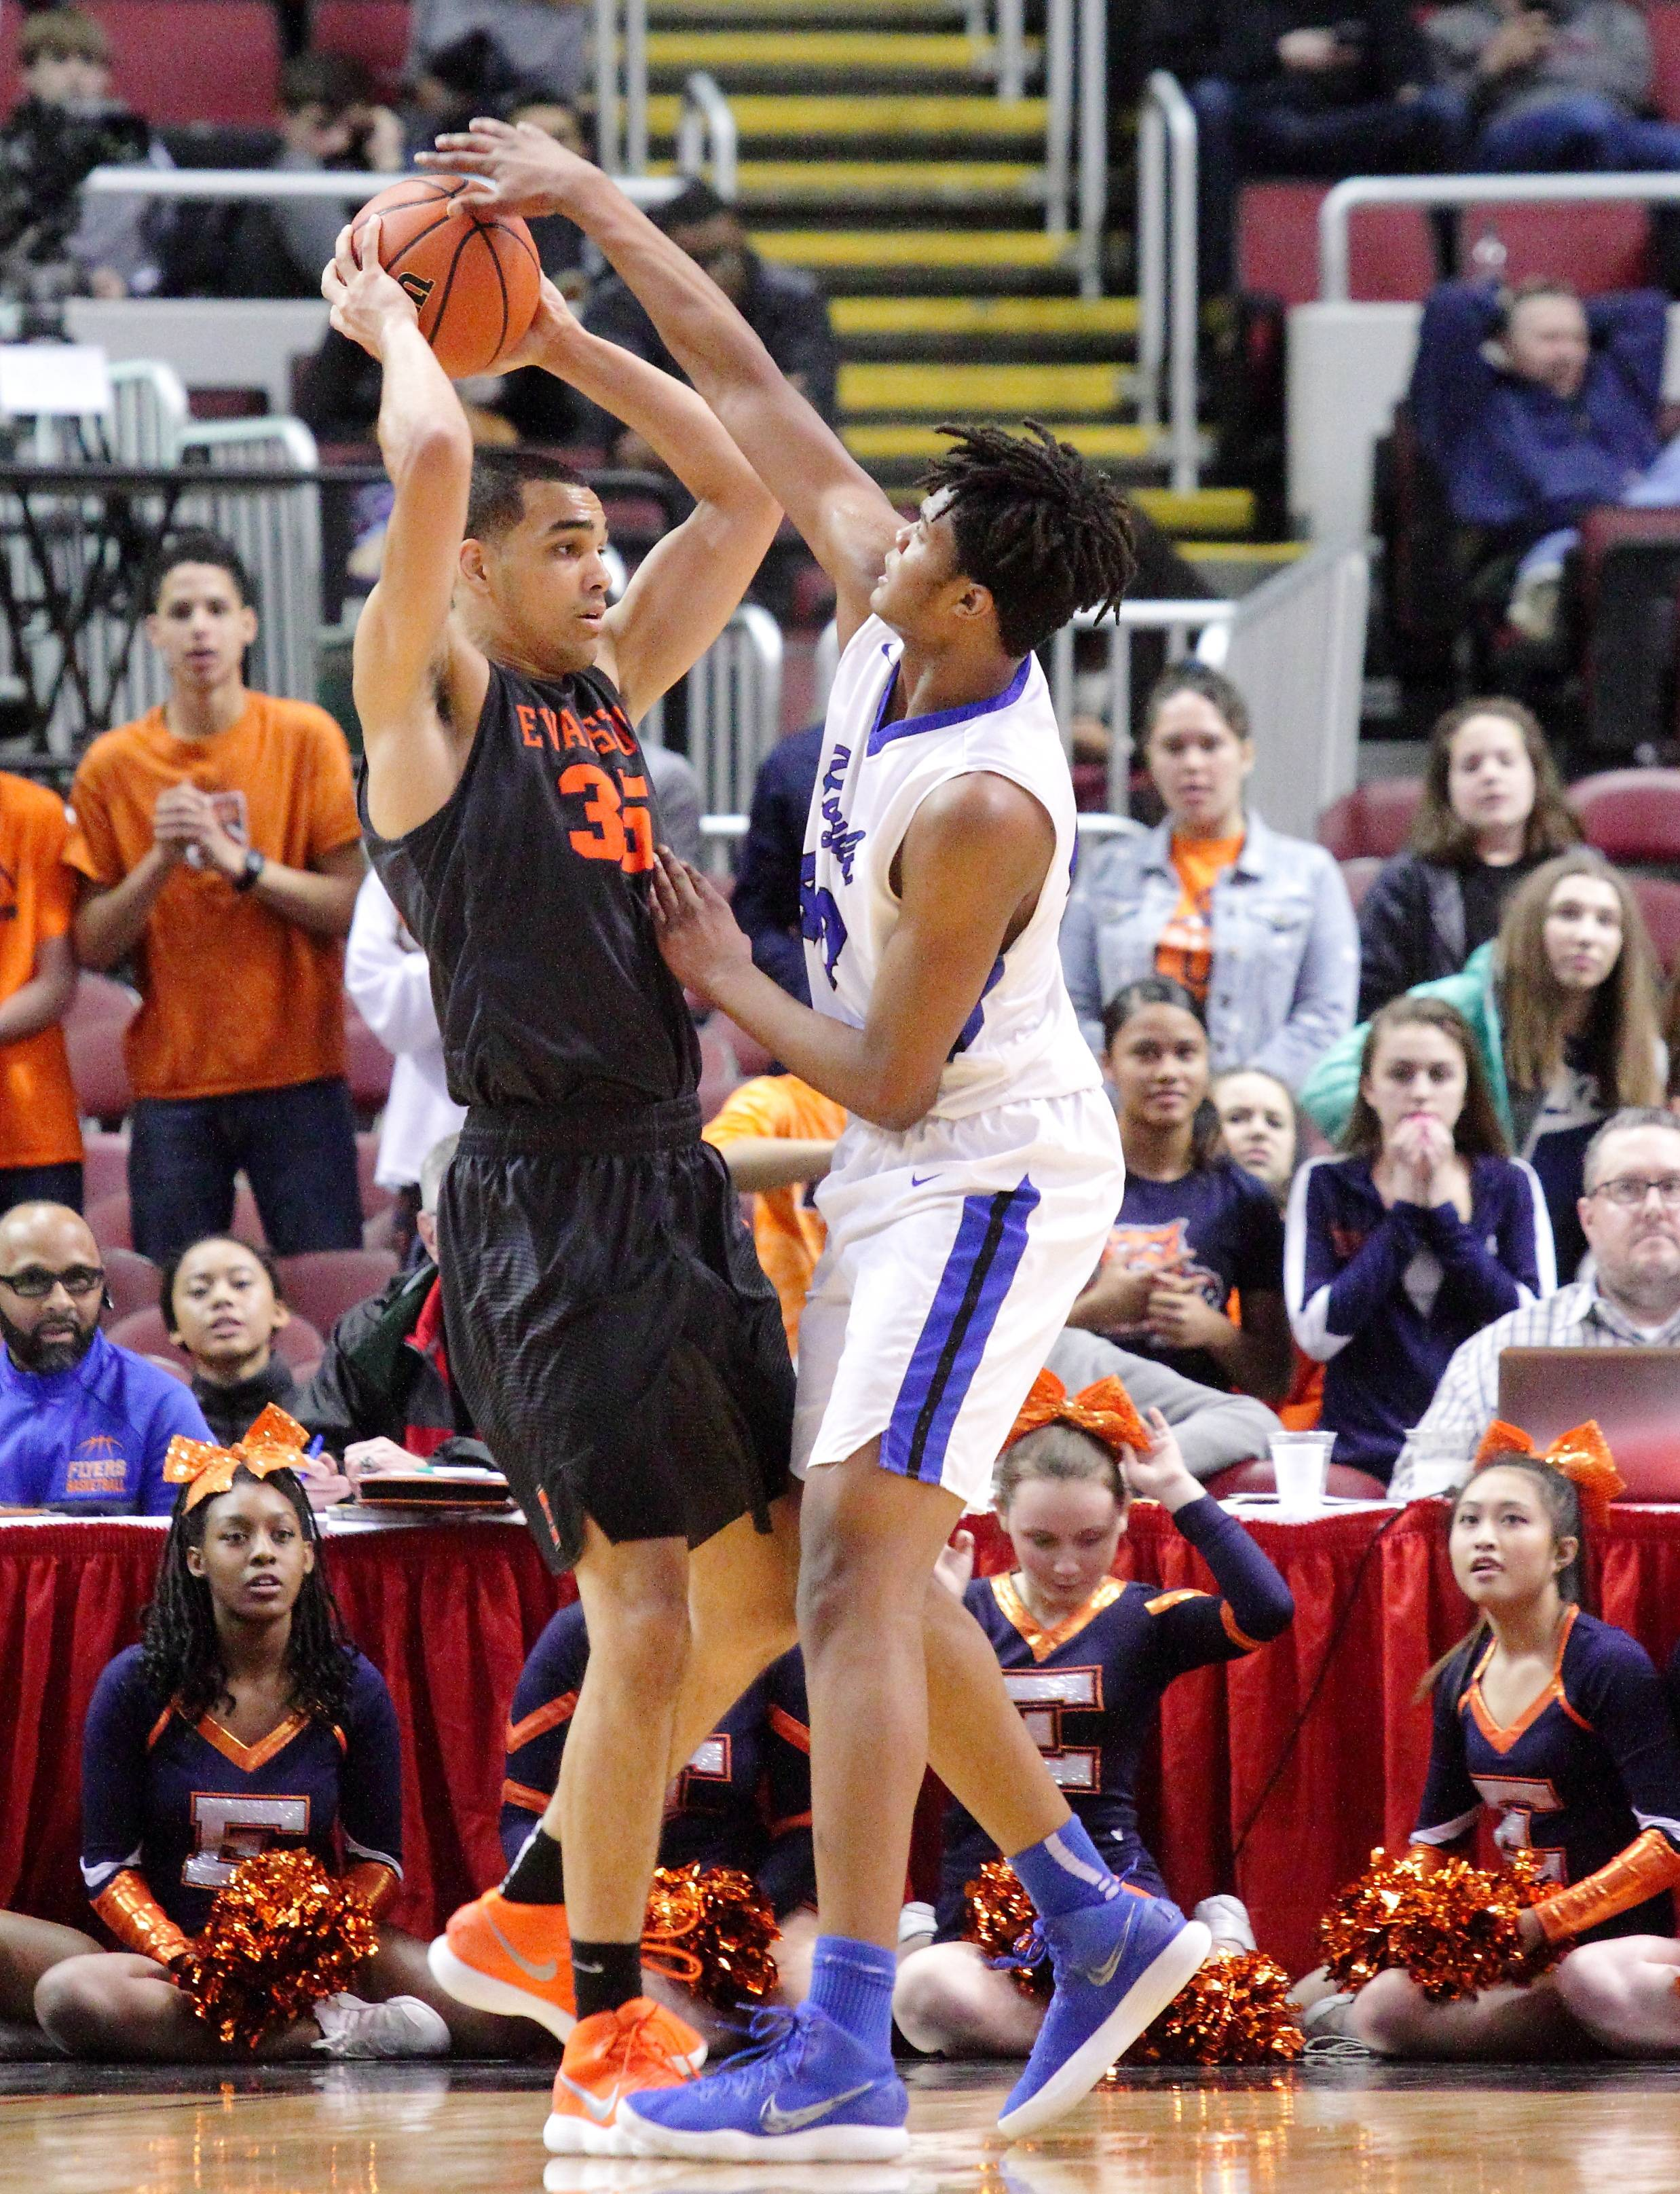 Larkin's Jalen Shaw plays tight defense on Evanston's Matt Hall on Saturday during the Class 4A third-place game in Peoria.